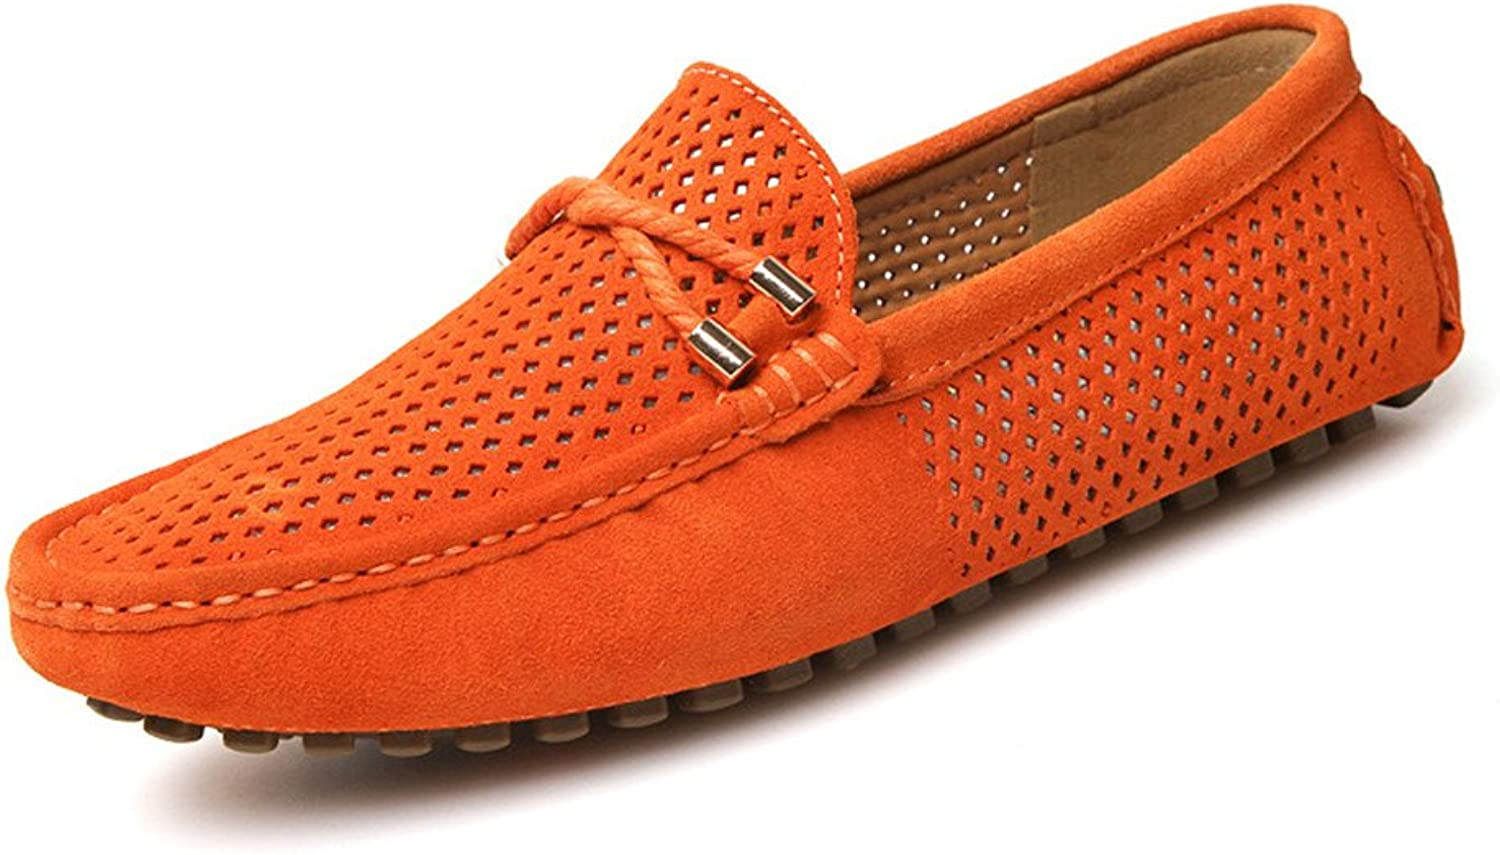 TiandaoMXL Men's Driving Loafers Breathable Perforation Genuine Leather Vamp Penny Moccasins Dress shoes